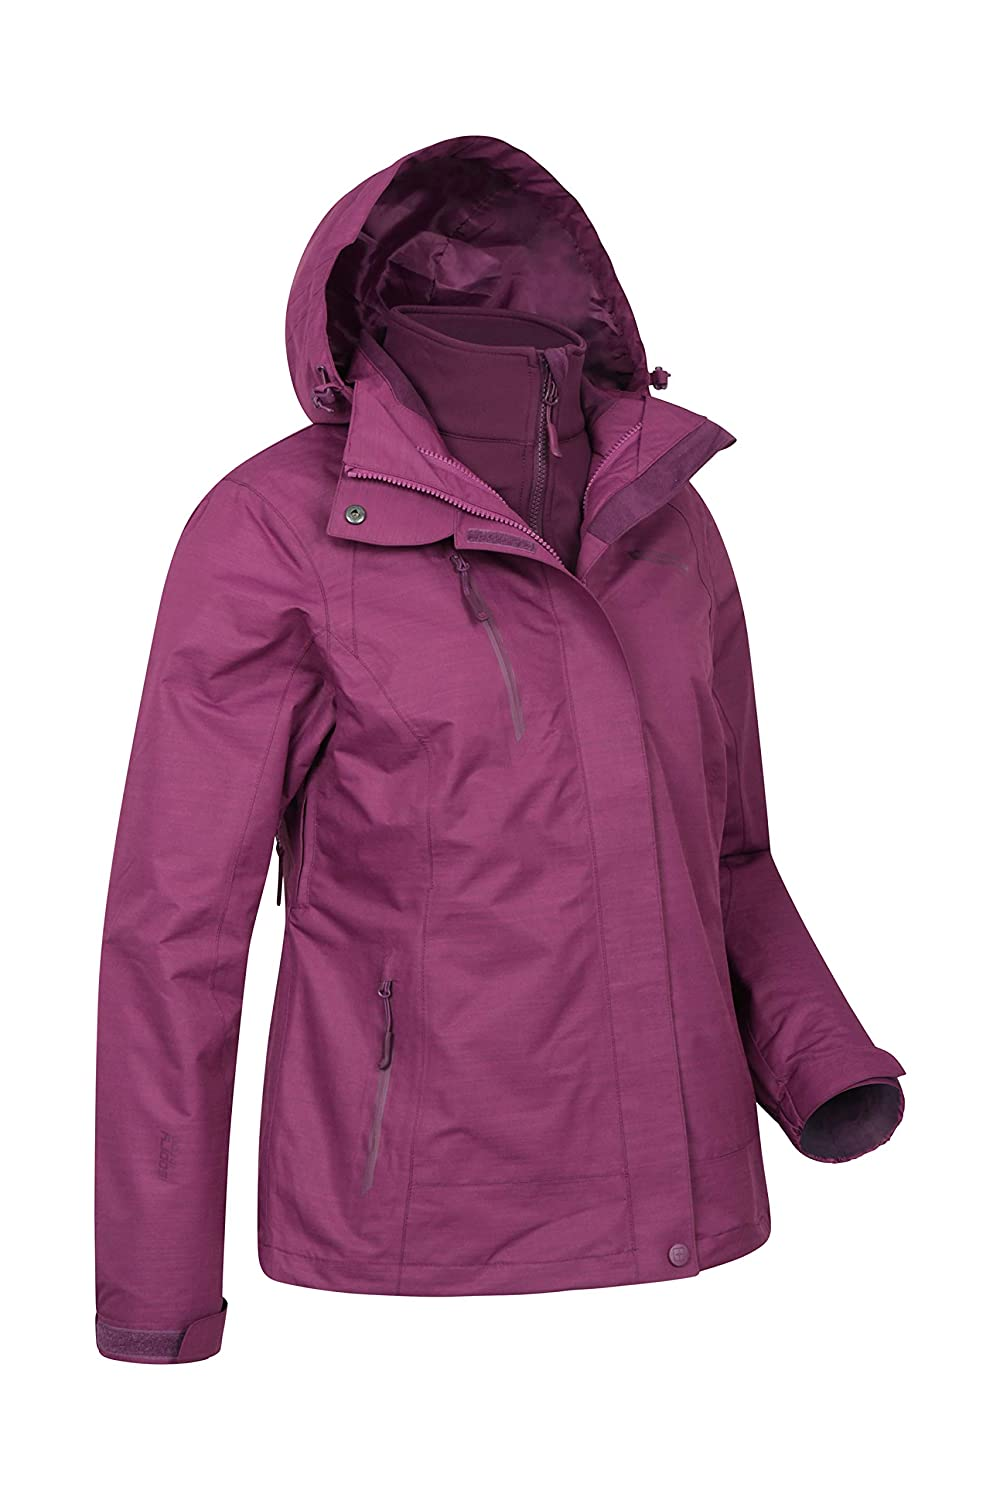 19cc9016d1 Mountain Warehouse Bracken Melange Womens 3 in 1 Jacket - Breathable Ladies  Casual Summer Coat